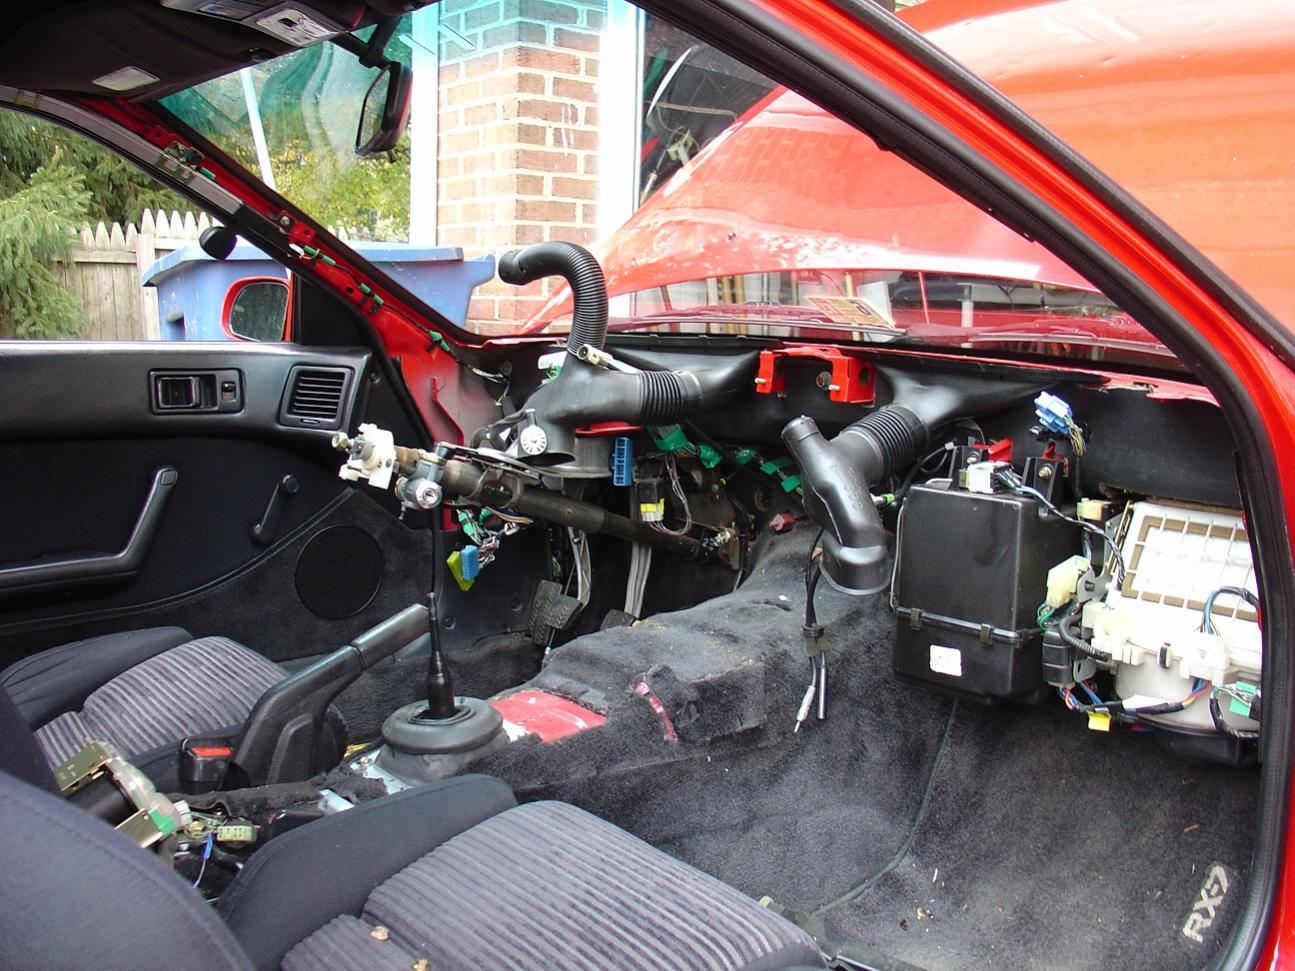 hight resolution of rx8 heater core diagram basic guide wiring diagram mazda 626 diagram mazda 626 diagram